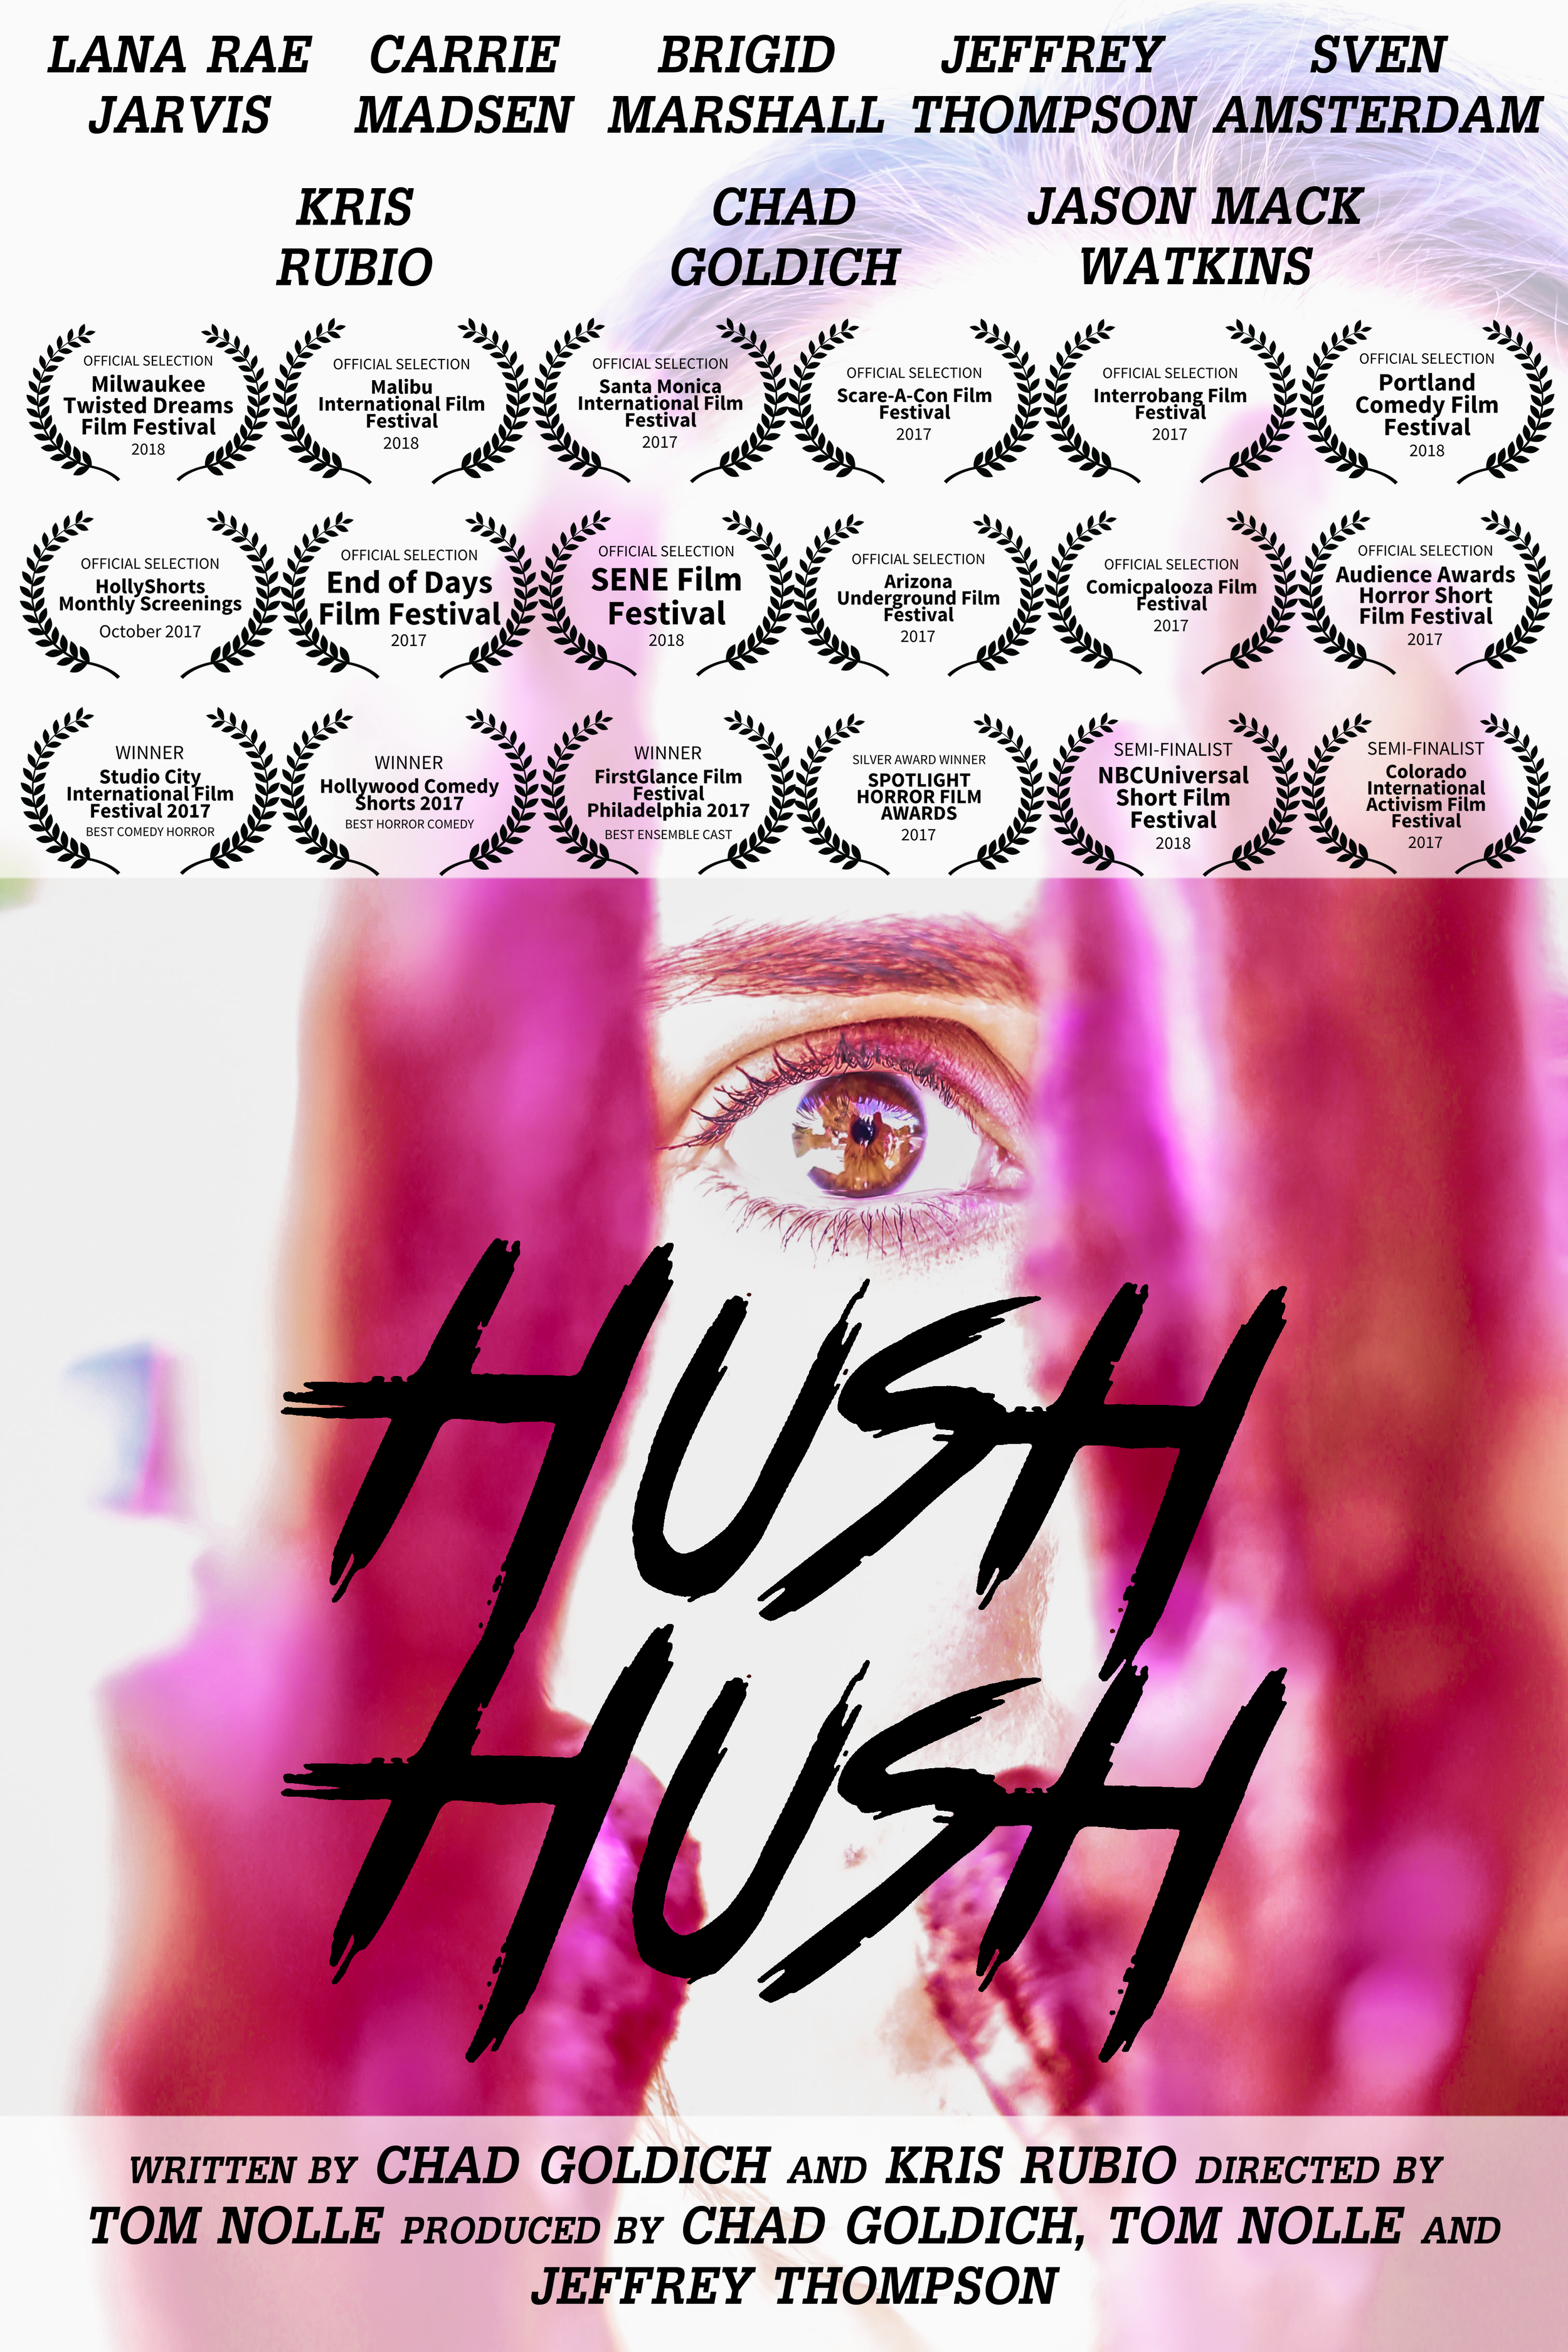 Hush Hush - Our second film, Hush Hush, tells the story of Dan and his friends who, after being at Coachella all weekend, return home to find that Dan's sister has killed their next-door neighbor. Even worse, their parents will be home in five minutes!